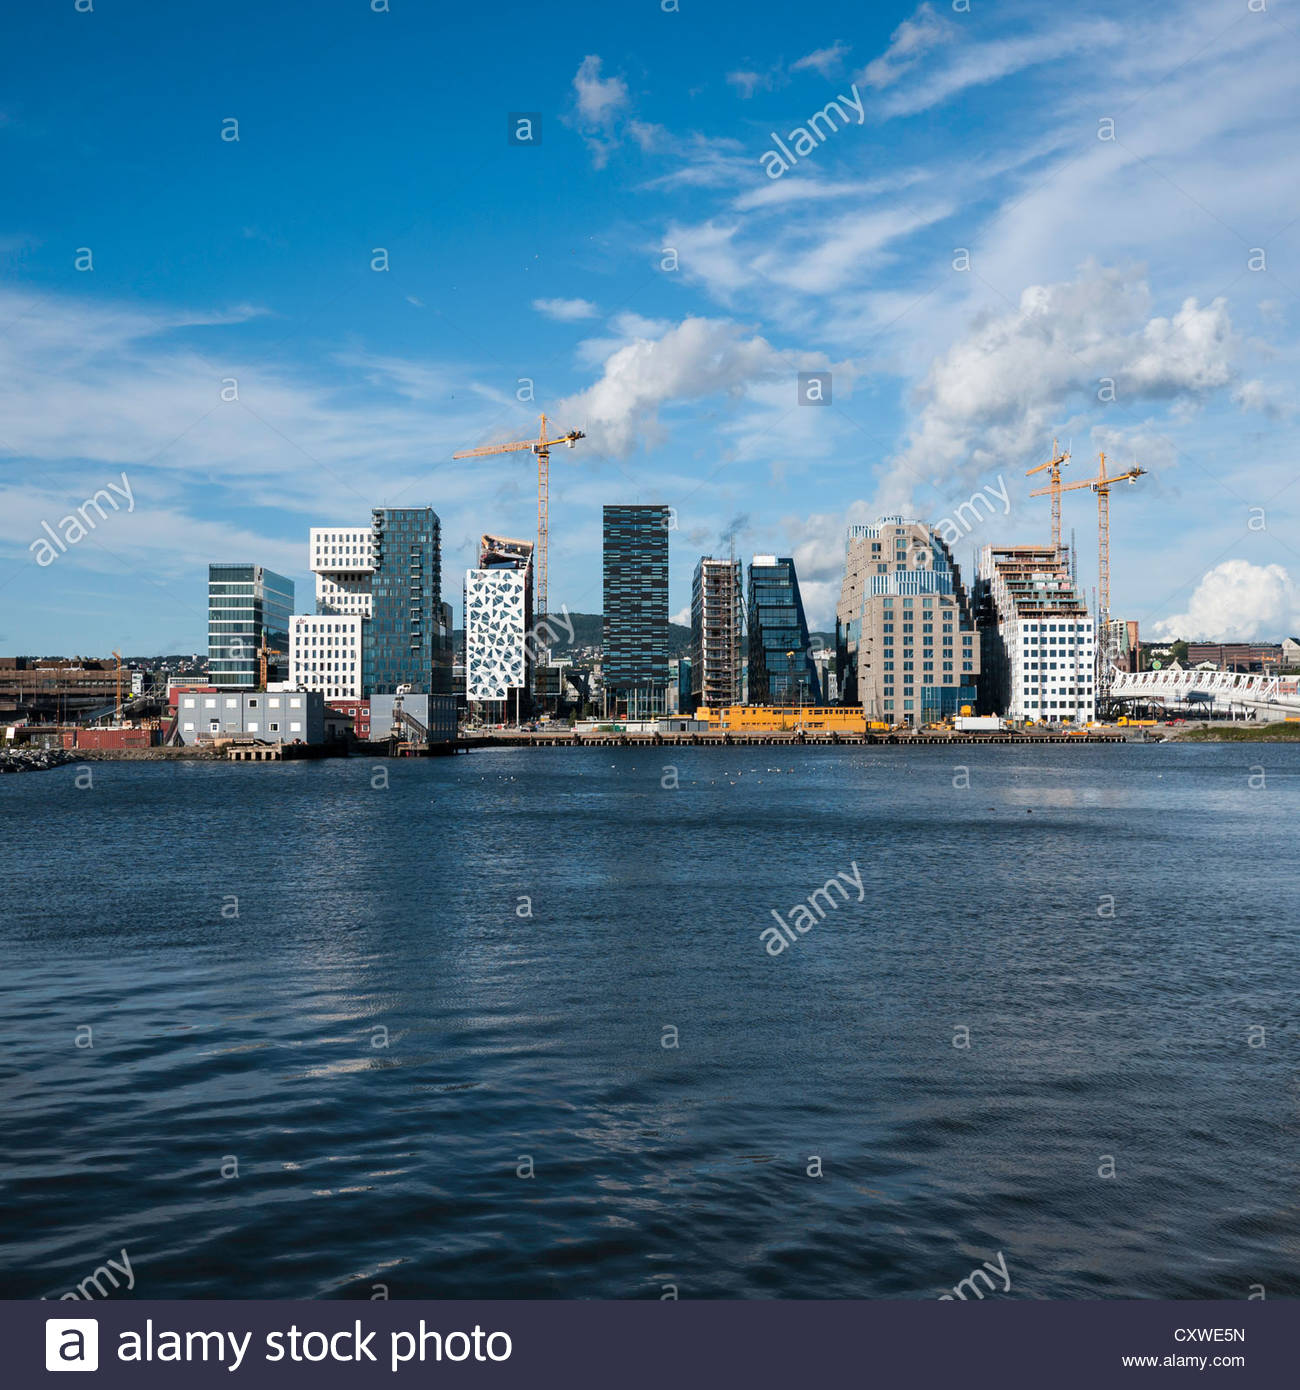 Barcode Project under construction, part of the Fjordcity development on the Oslo waterfront: Oslo, Norway. - Stock Image